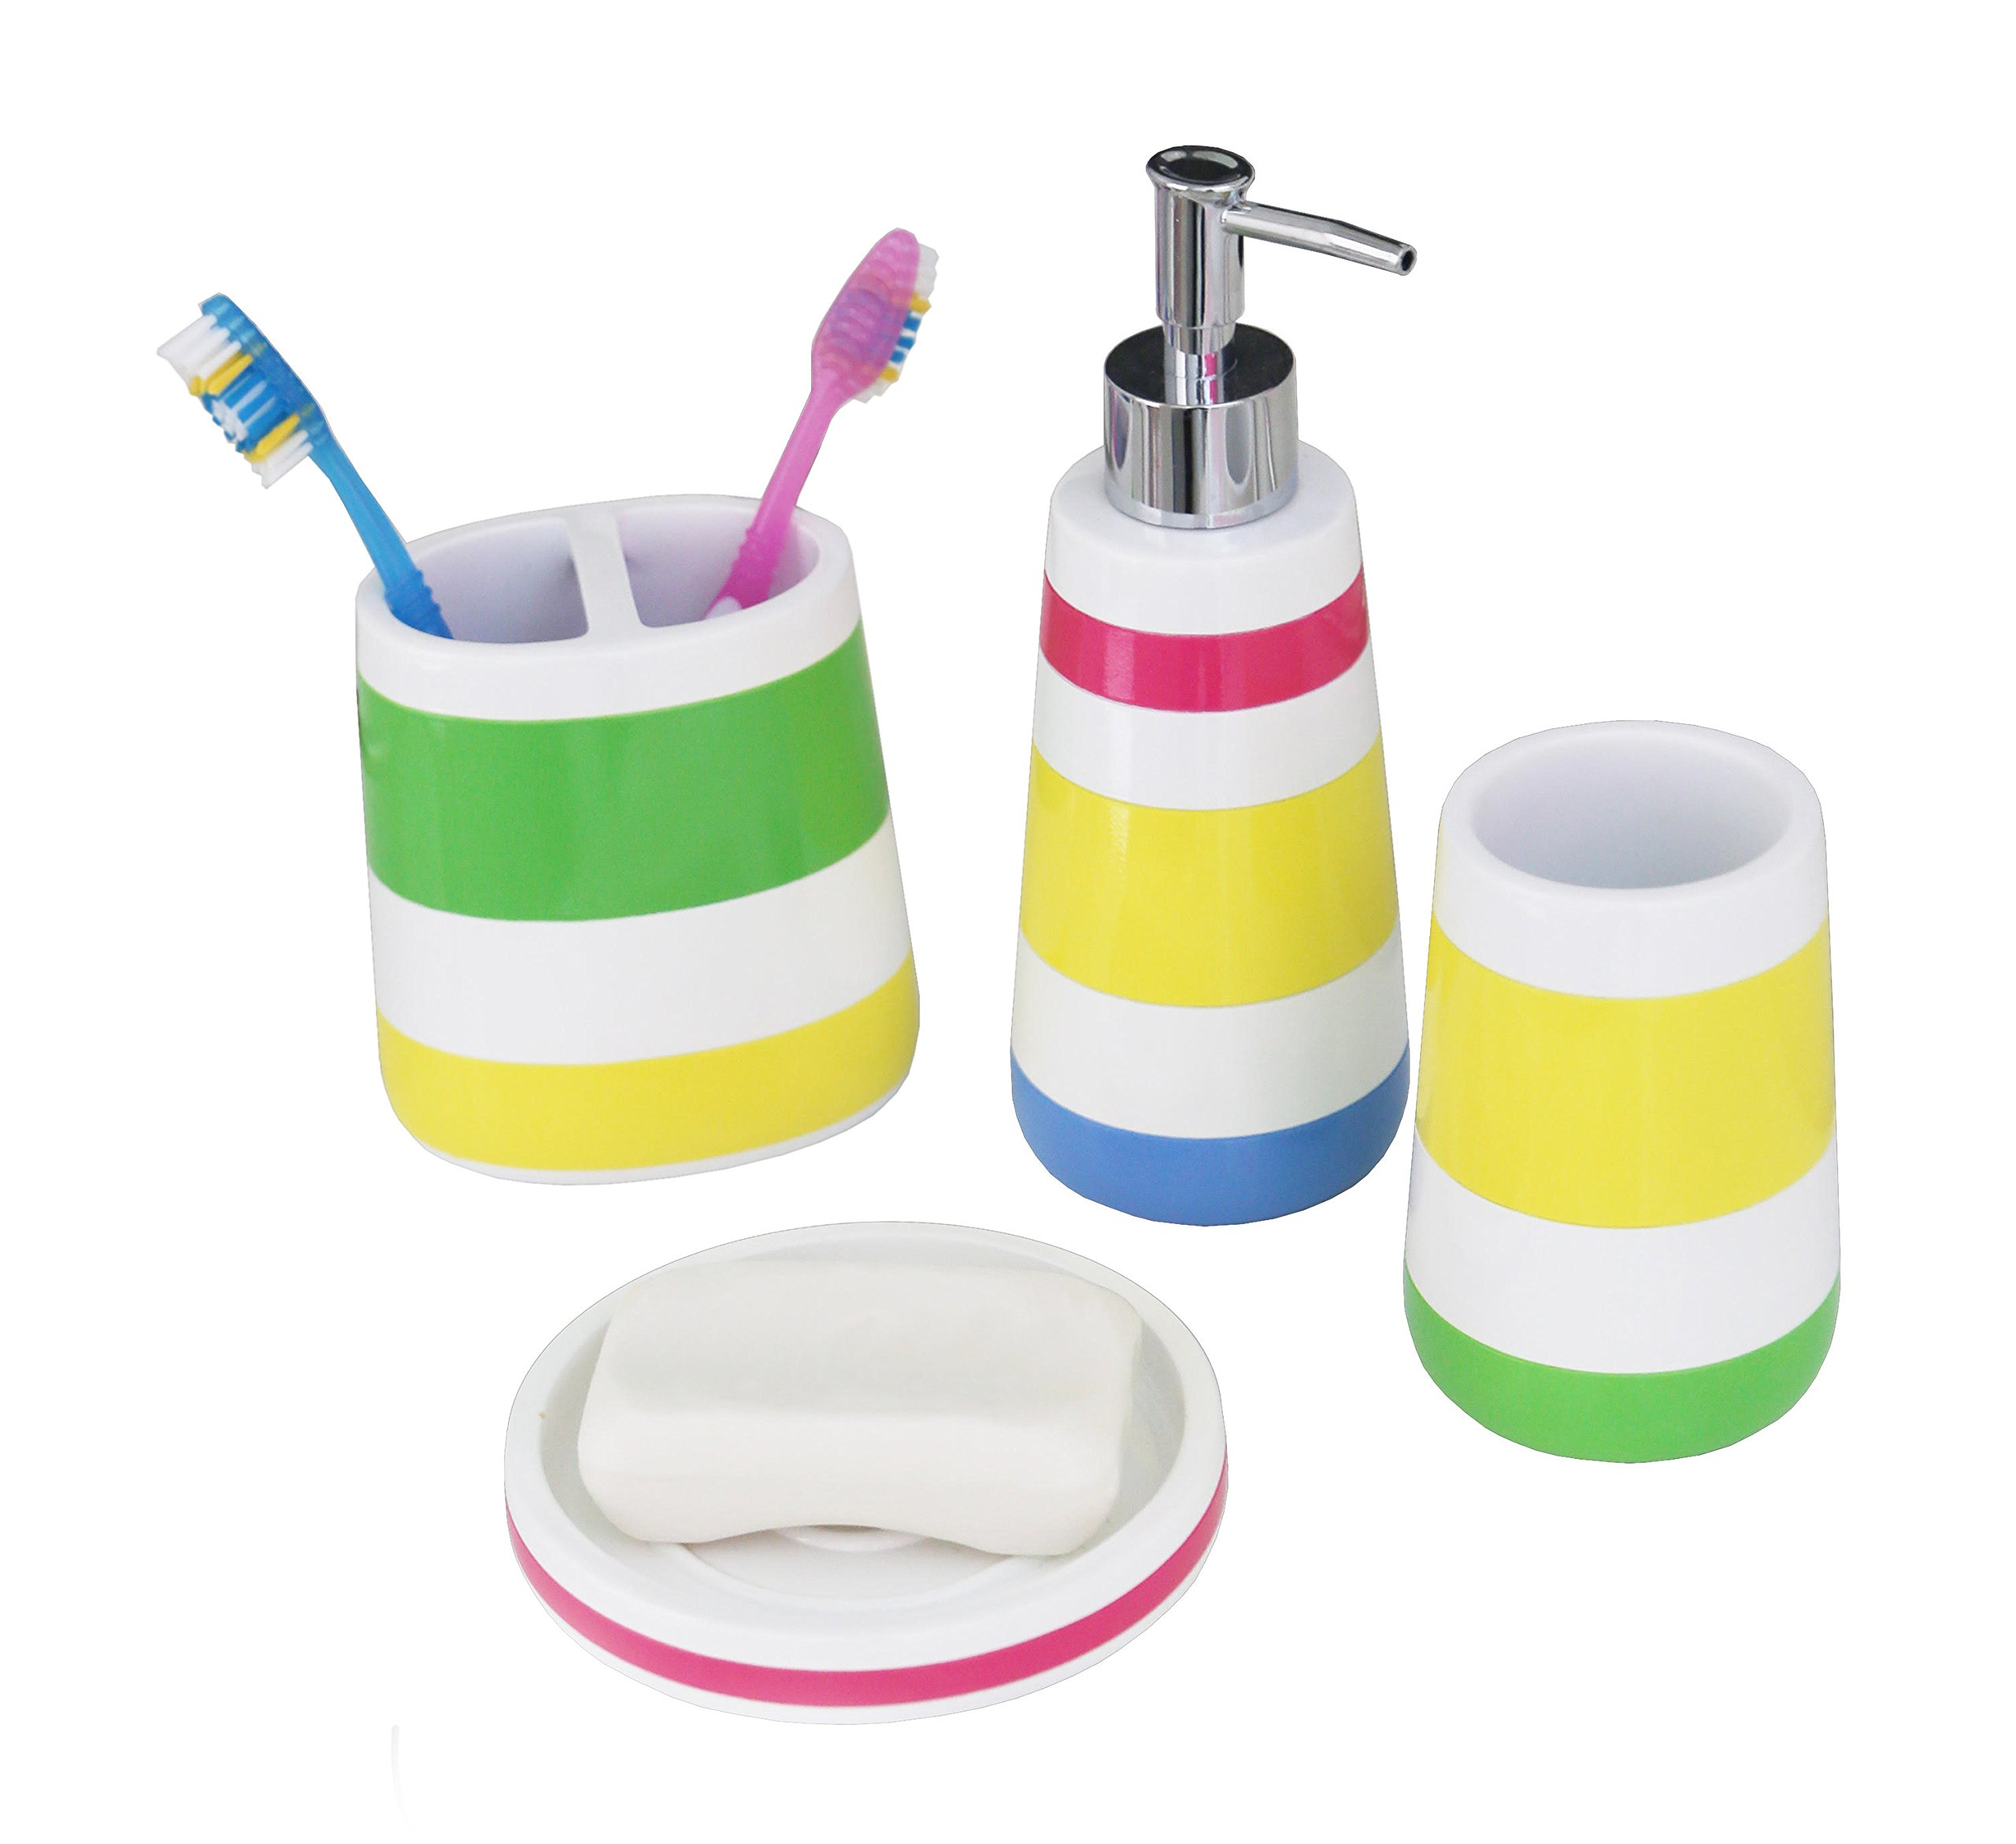 Hermosa Collection Colorful Four Piece Kids Baby Bathroom Fun Accessories Set by Hermosa Collection